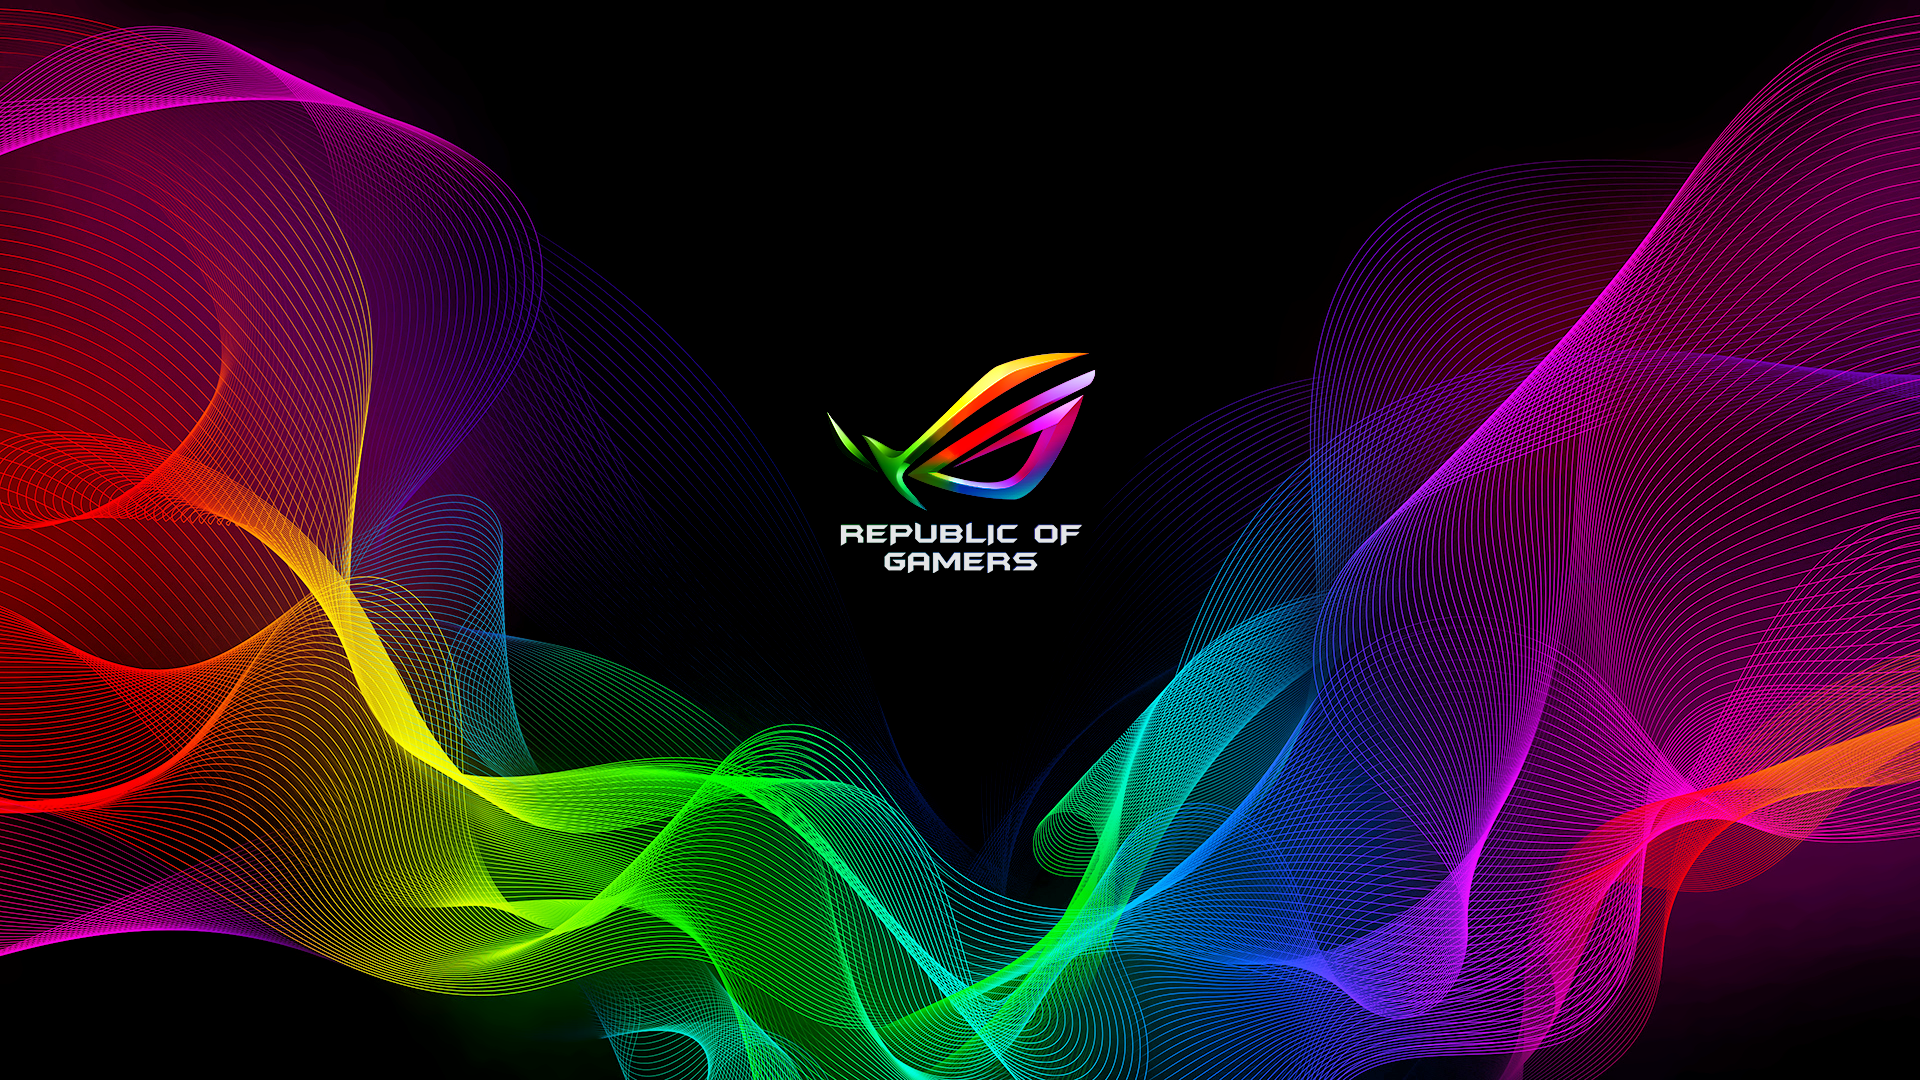 Rgb Rog Wallpaper Based The E From Razer Asus Rog